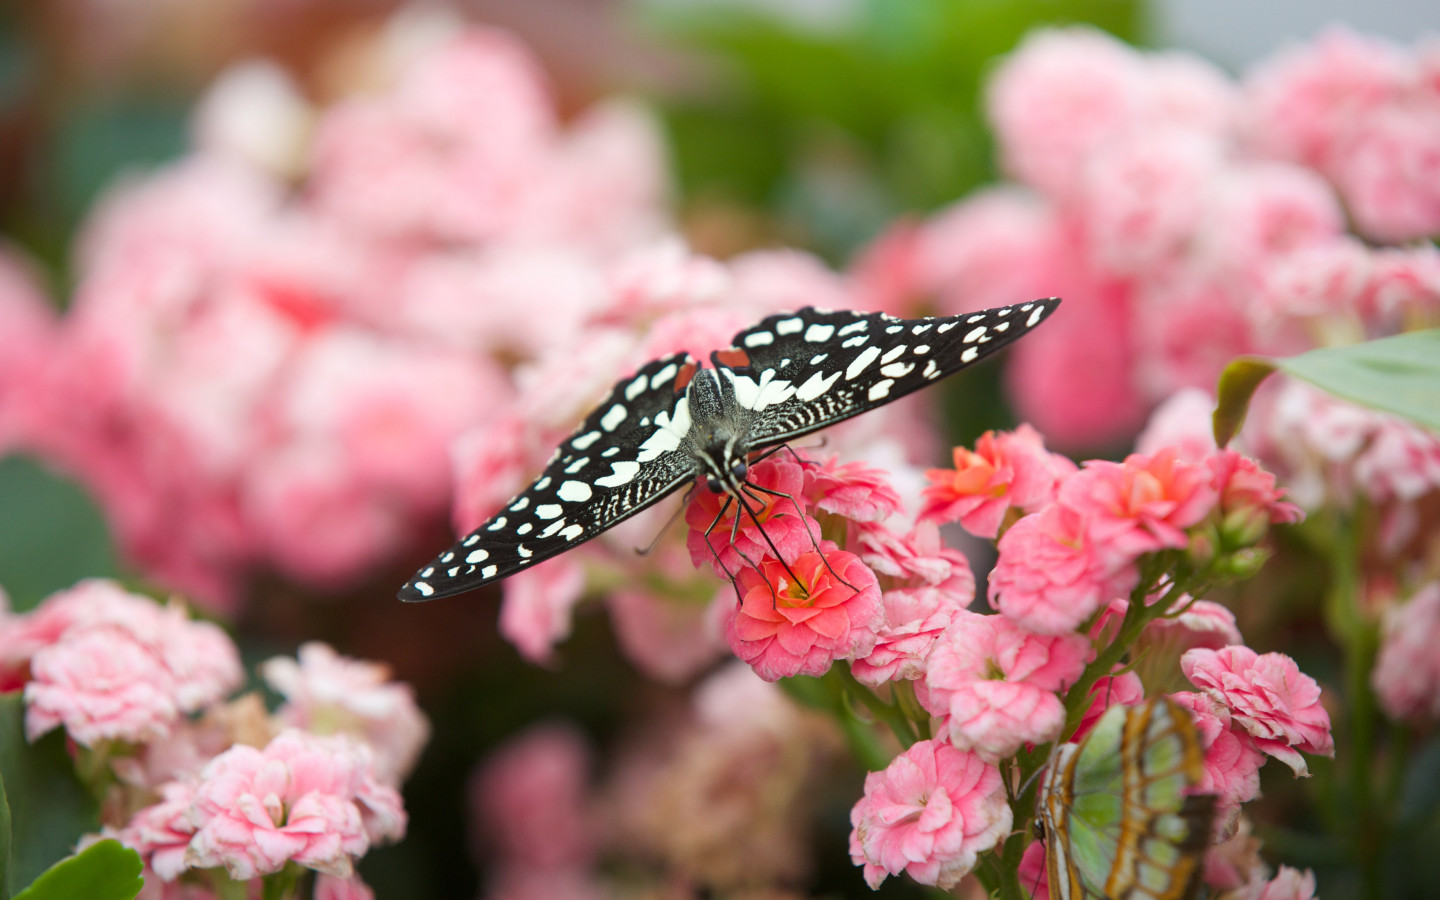 Black butterfly on pink flowers wallpaper 1440x900